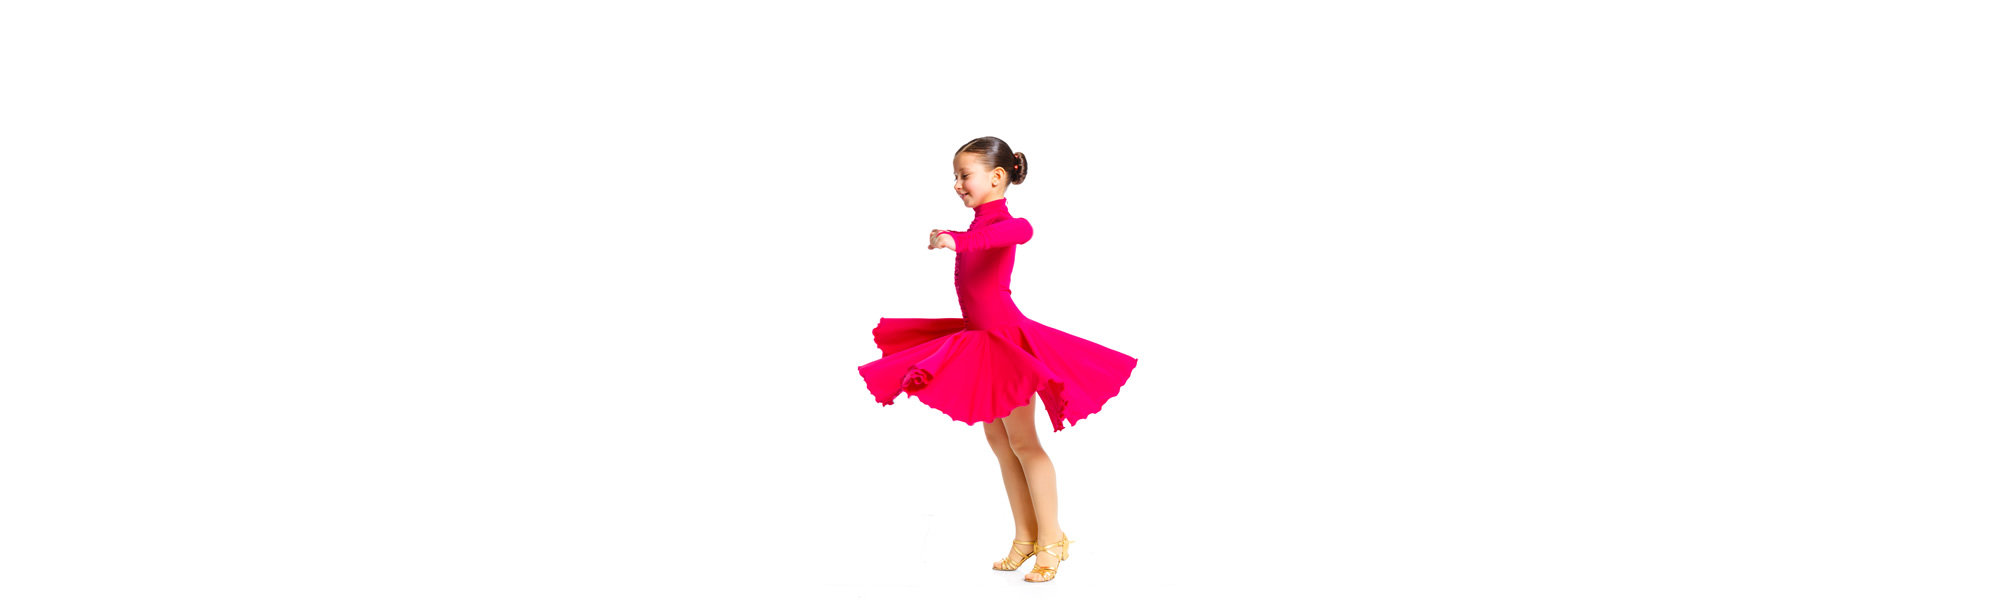 Girl Pink Dress Twirl – General